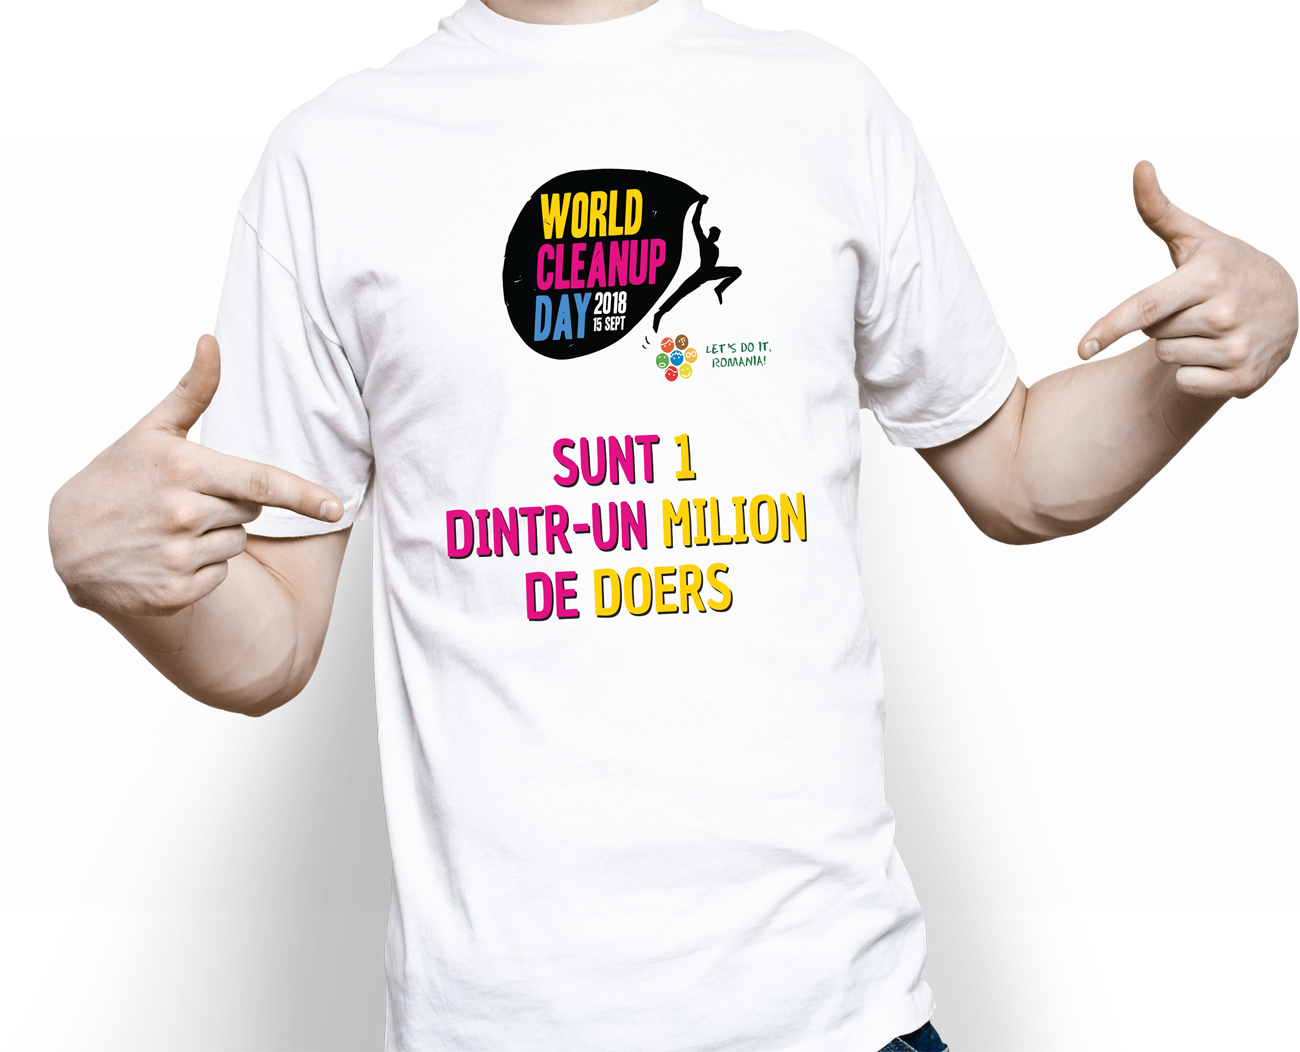 Tricou bărbați Let's Do It, România! - 35 LEI |  PRINTCENTER - Tipar digital, offset, indoor, outdoor